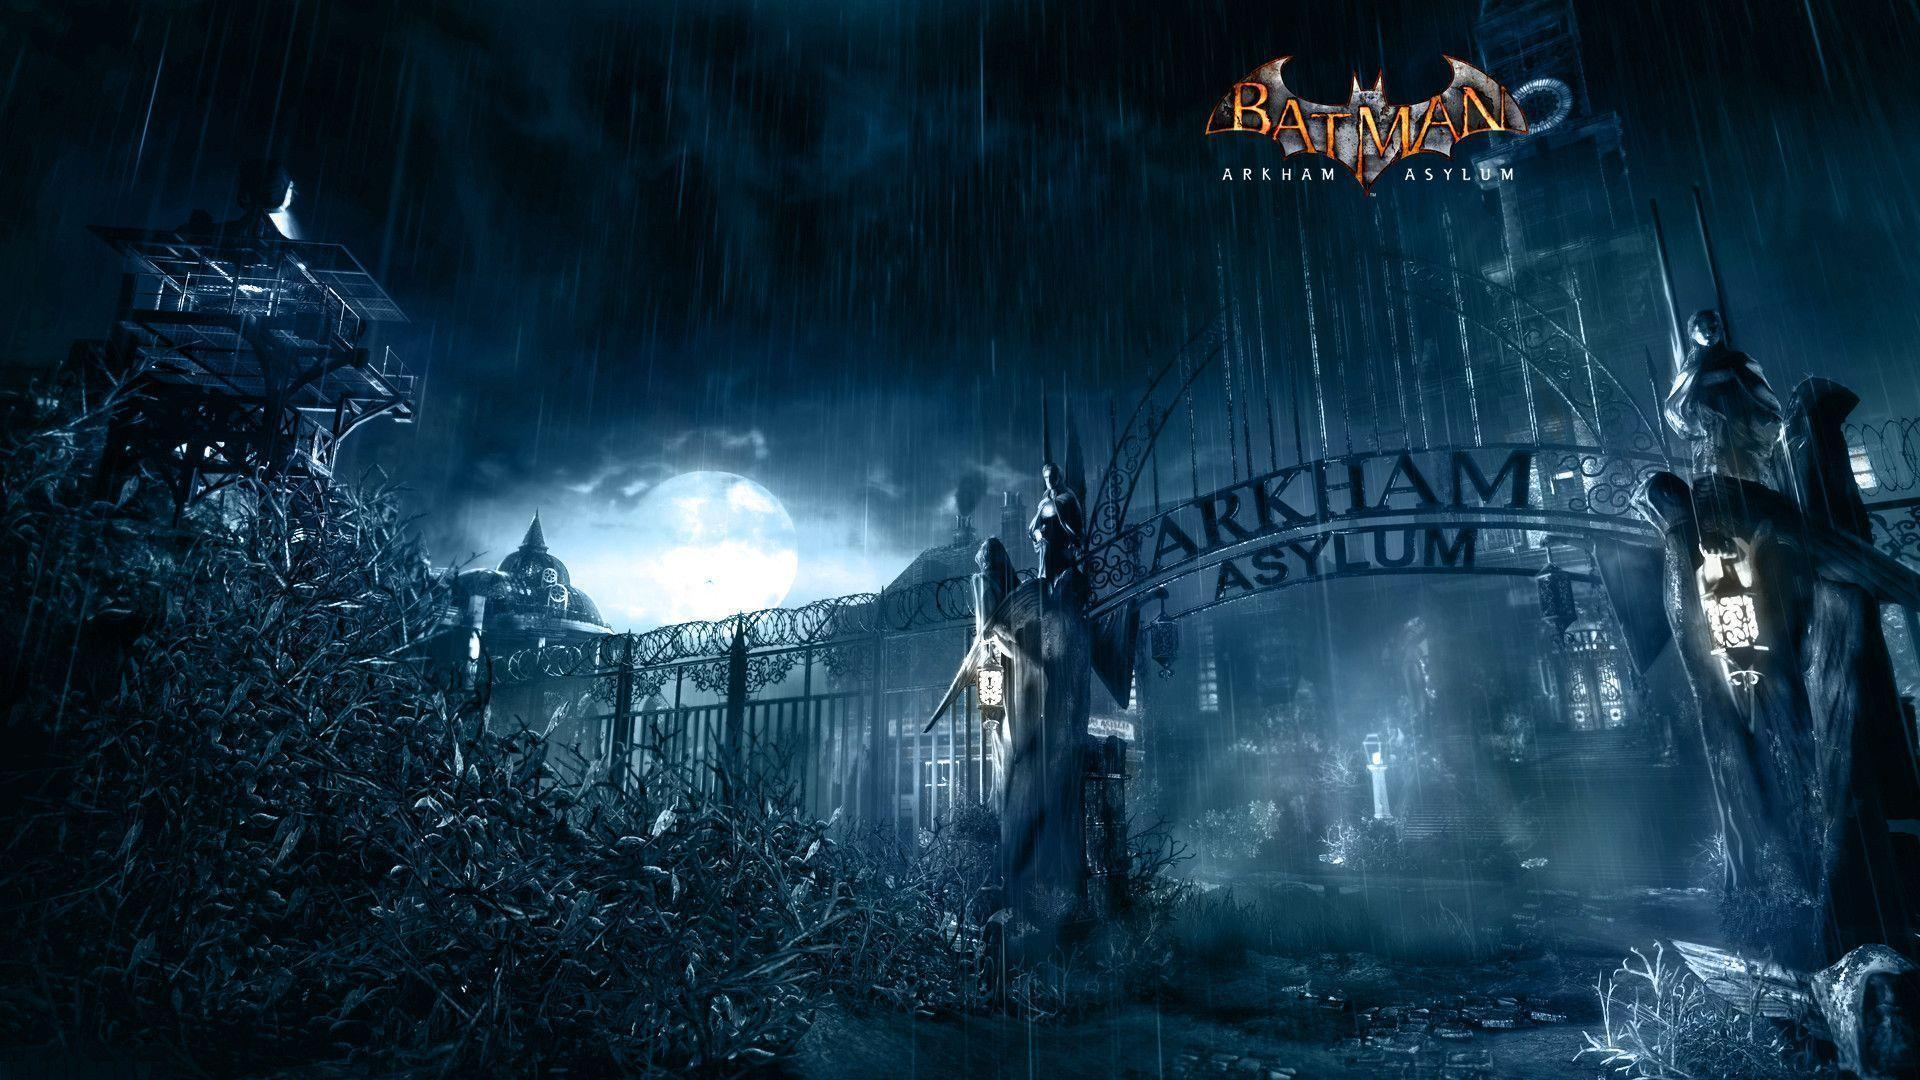 Batman Arkham Asylum Wallpapers 1920x1080